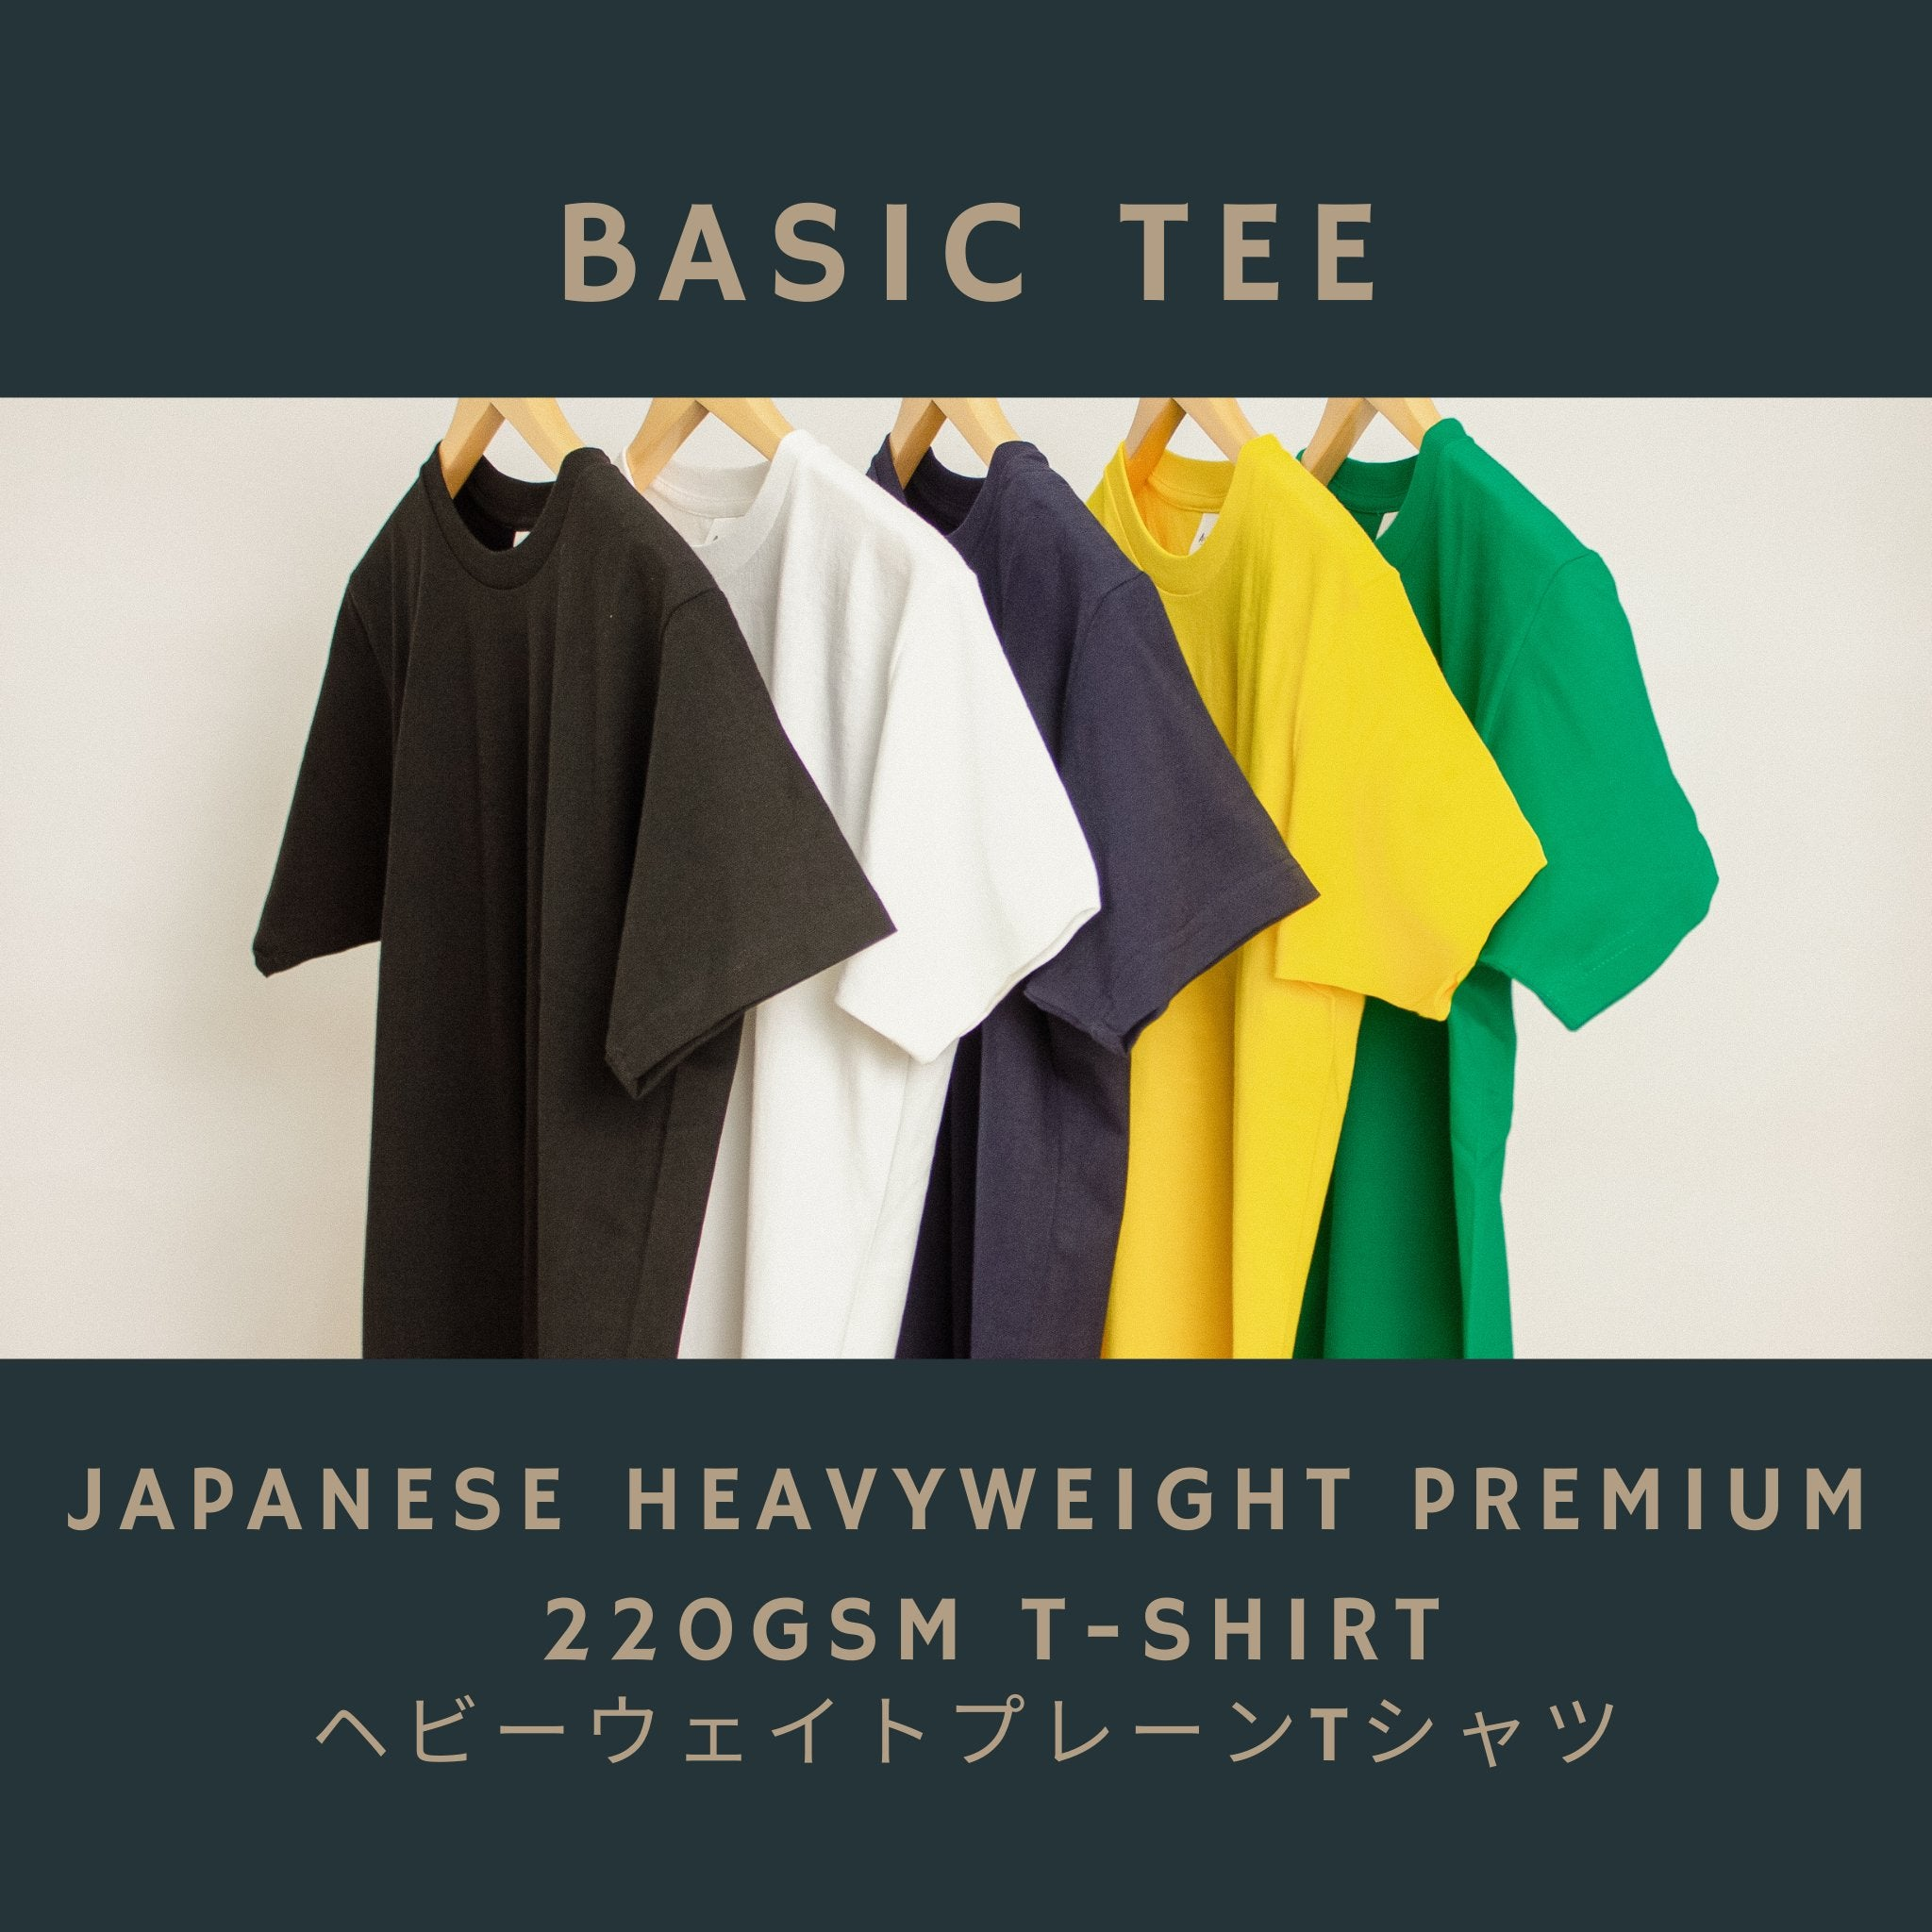 Japanese Heavyweight Premium 220gsm T-Shirt